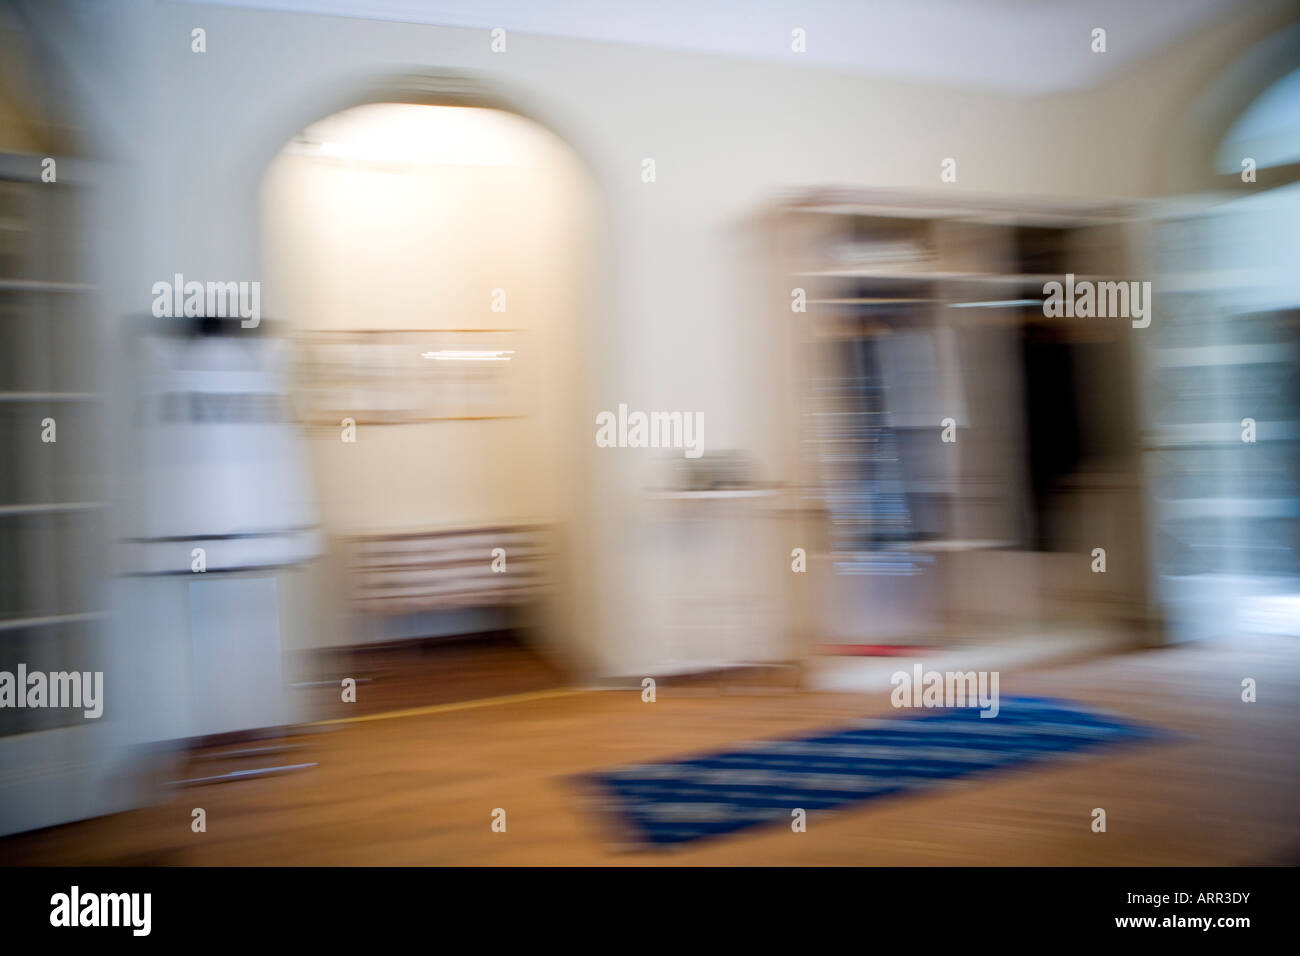 interior in a blurry context - Stock Image